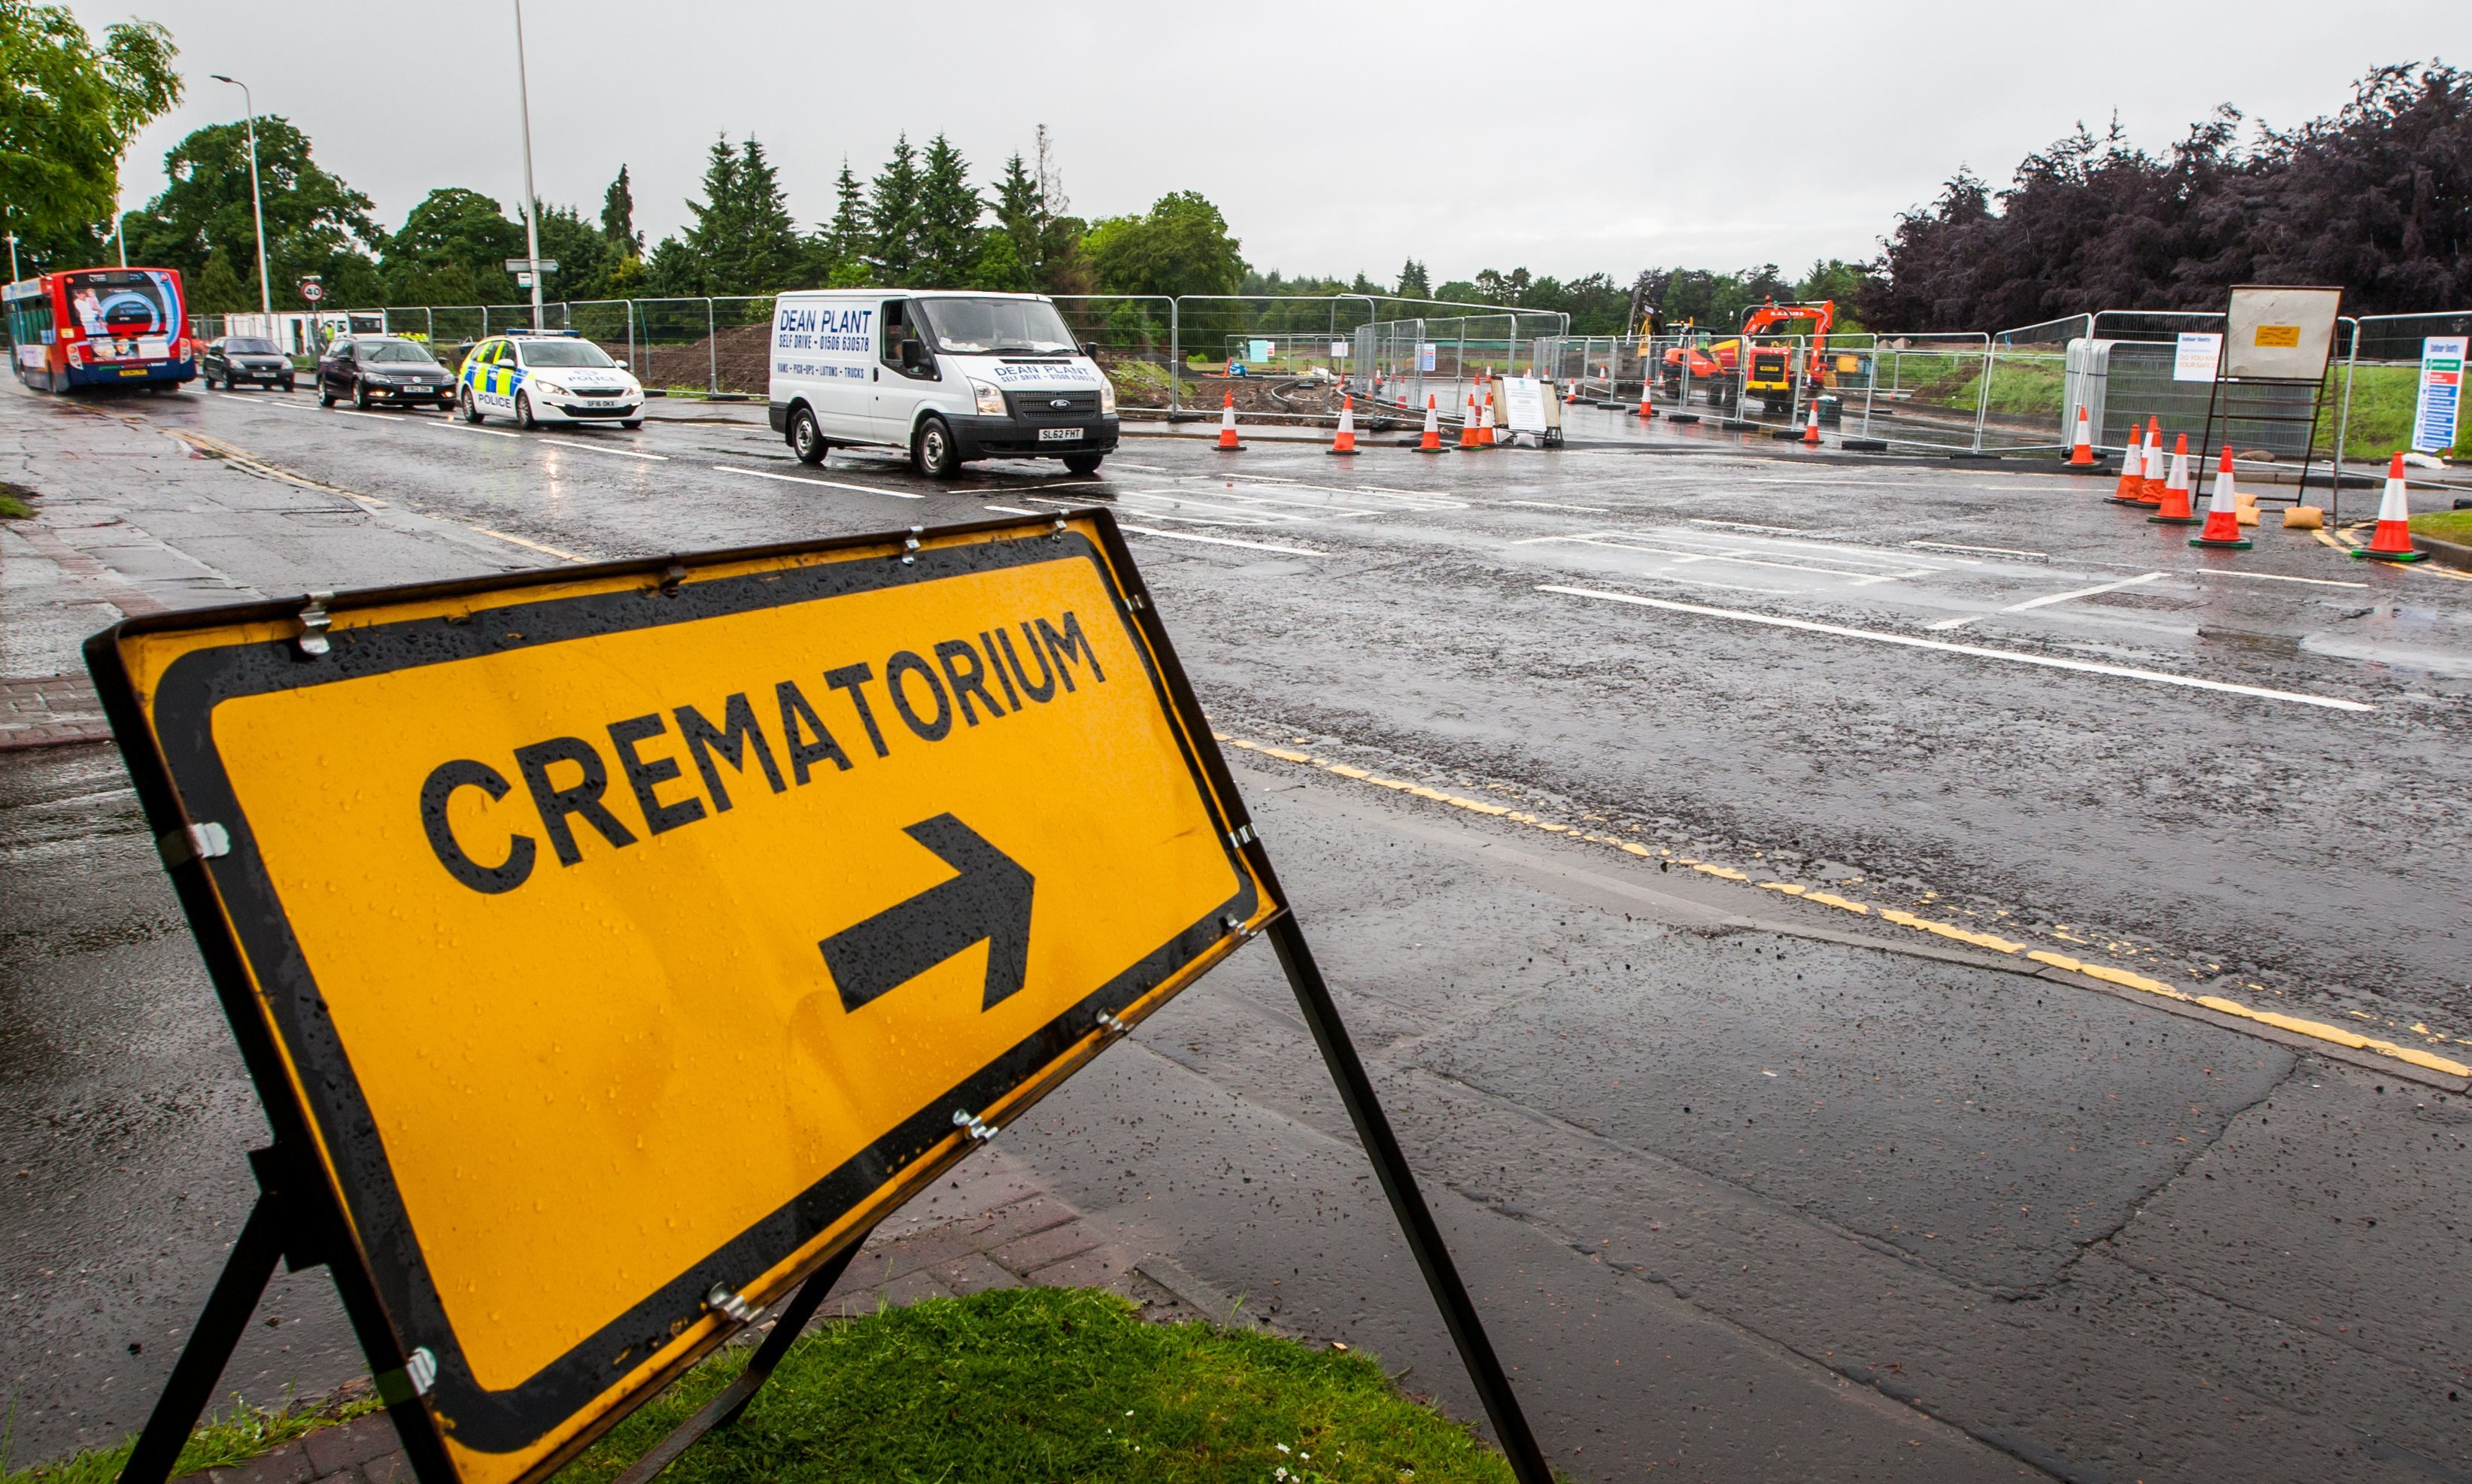 Work begins on Perth Crematorium.